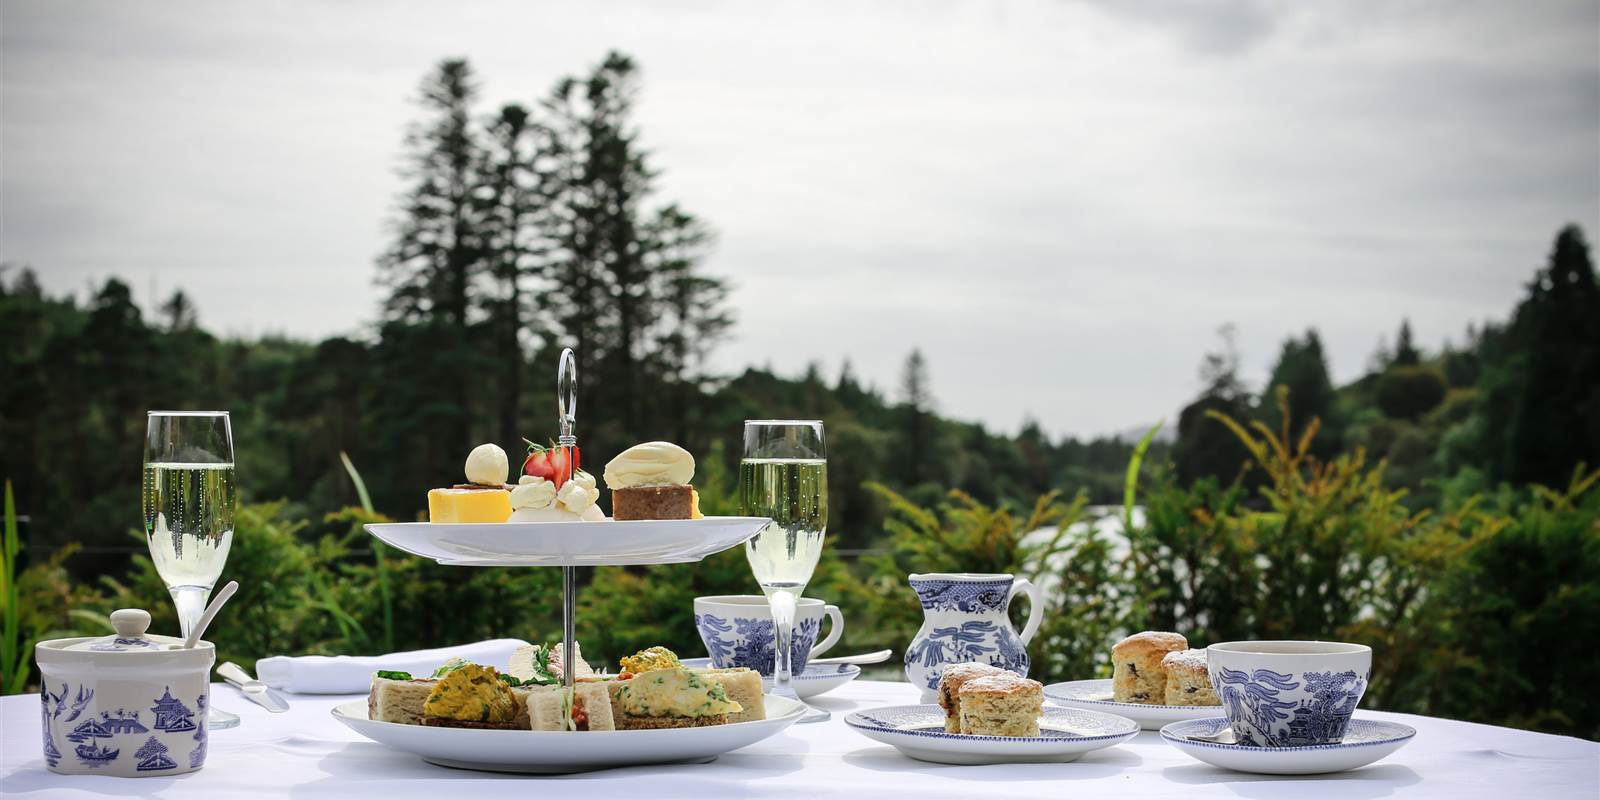 Afternoon Tea at Ballynahinch